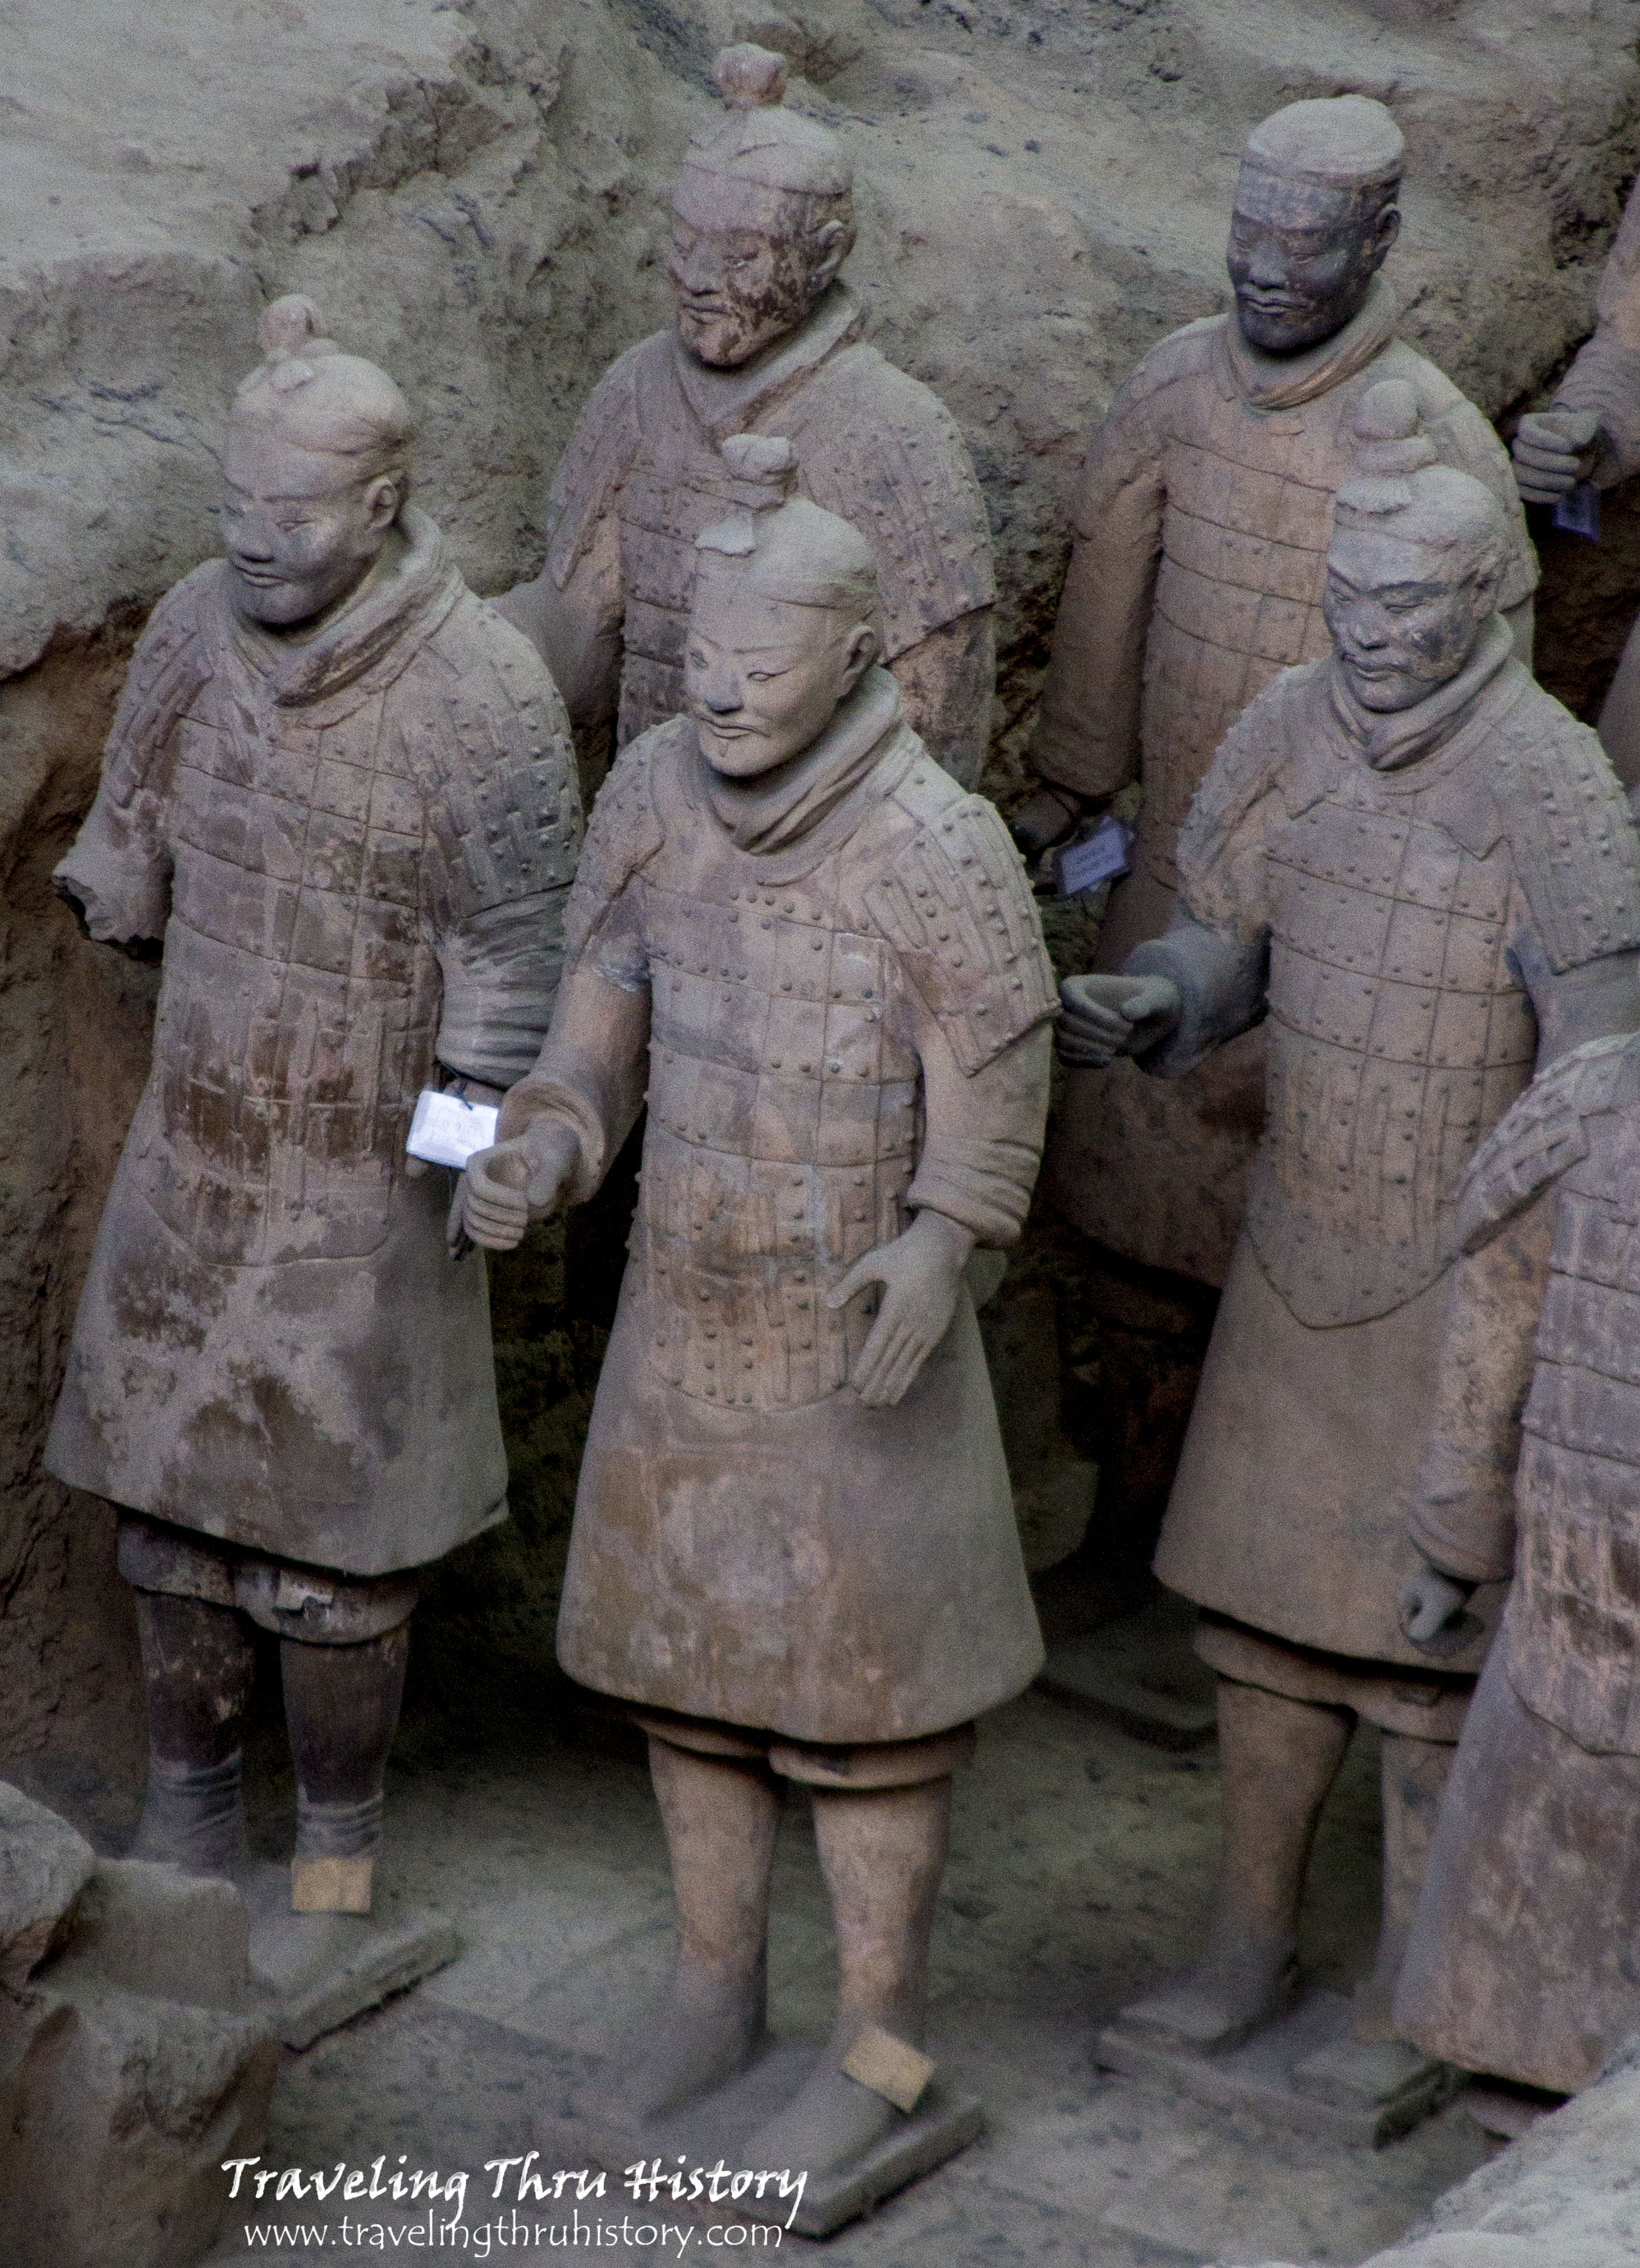 The Terracotta Army is a collection of terracotta sculptures depicting the armies of Qin Shi Huang, the first Emperor of China, outside Lintong, Xi'an, Shaanxi, China.